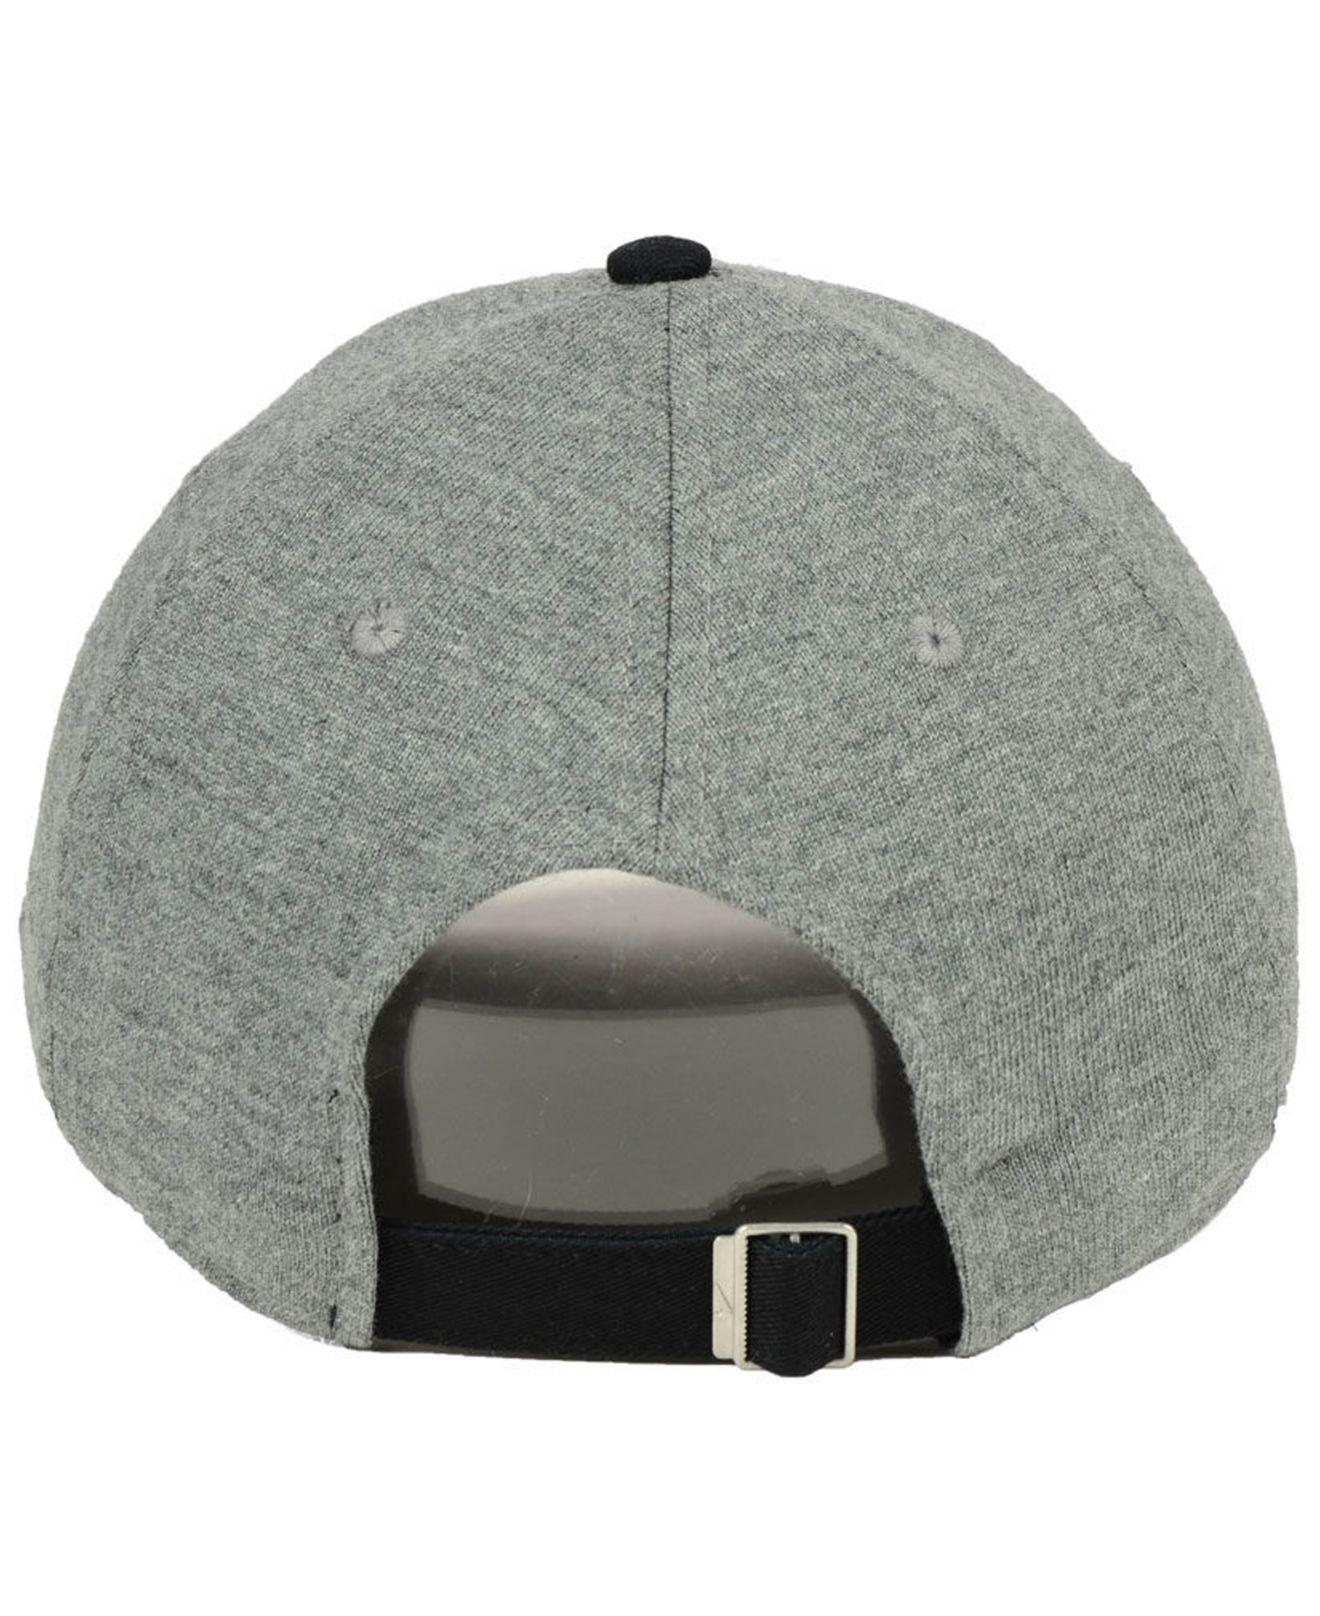 new product 73255 433af ... australia nike gray chicago white sox 2 tone heather cap for men lyst. view  fullscreen